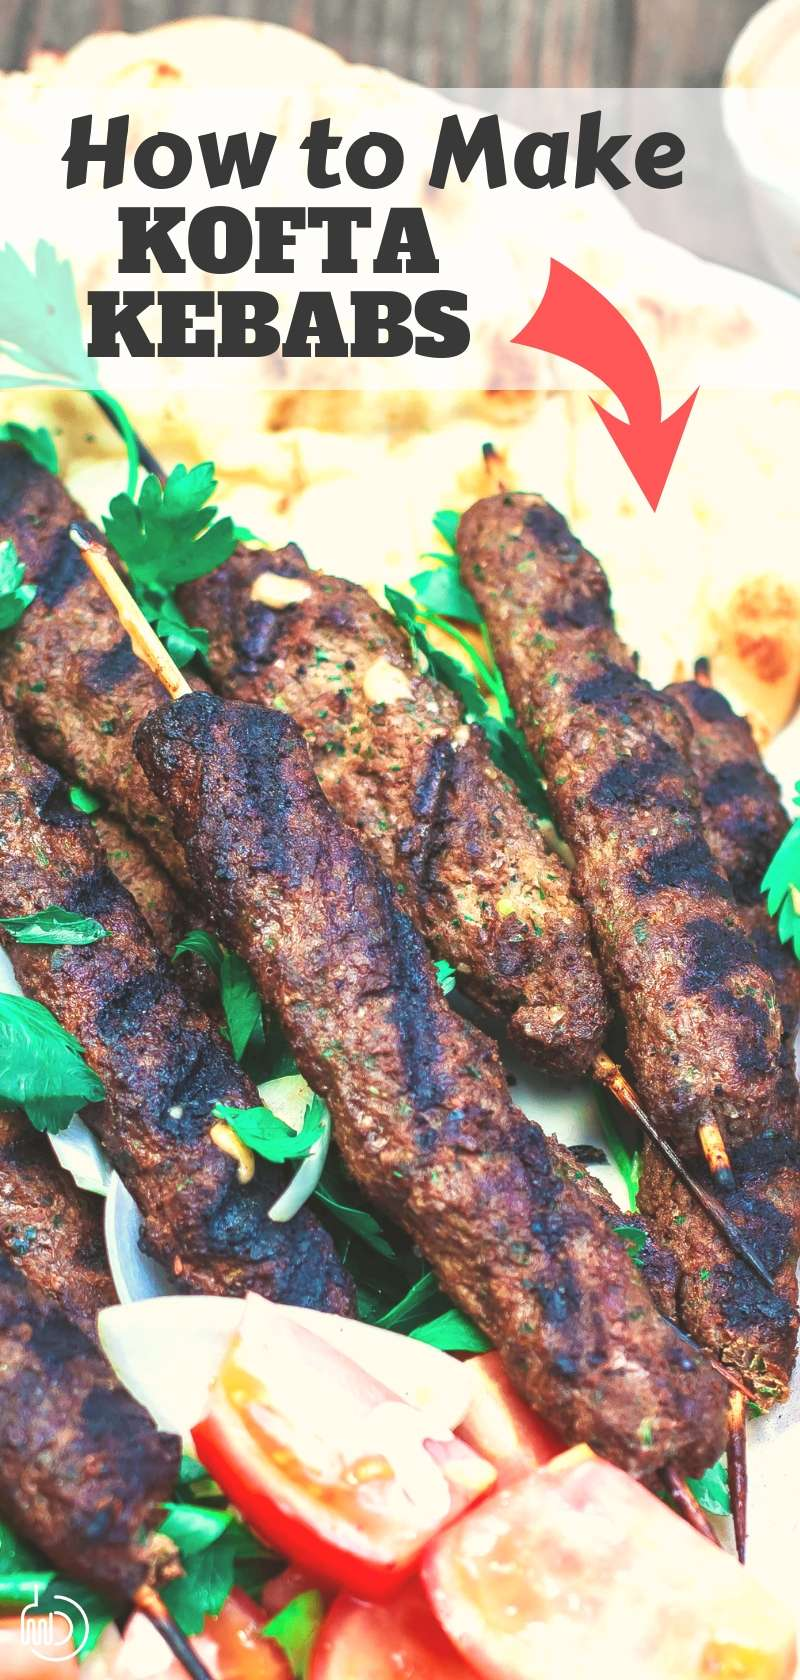 This Tutorial Is All You Need To Make The Best Authentic Kofta Kebabs You Ll Love These Tasty Kabobs With A Ground Me With Images Kofta Kebab Recipe Kebab Recipes Recipes